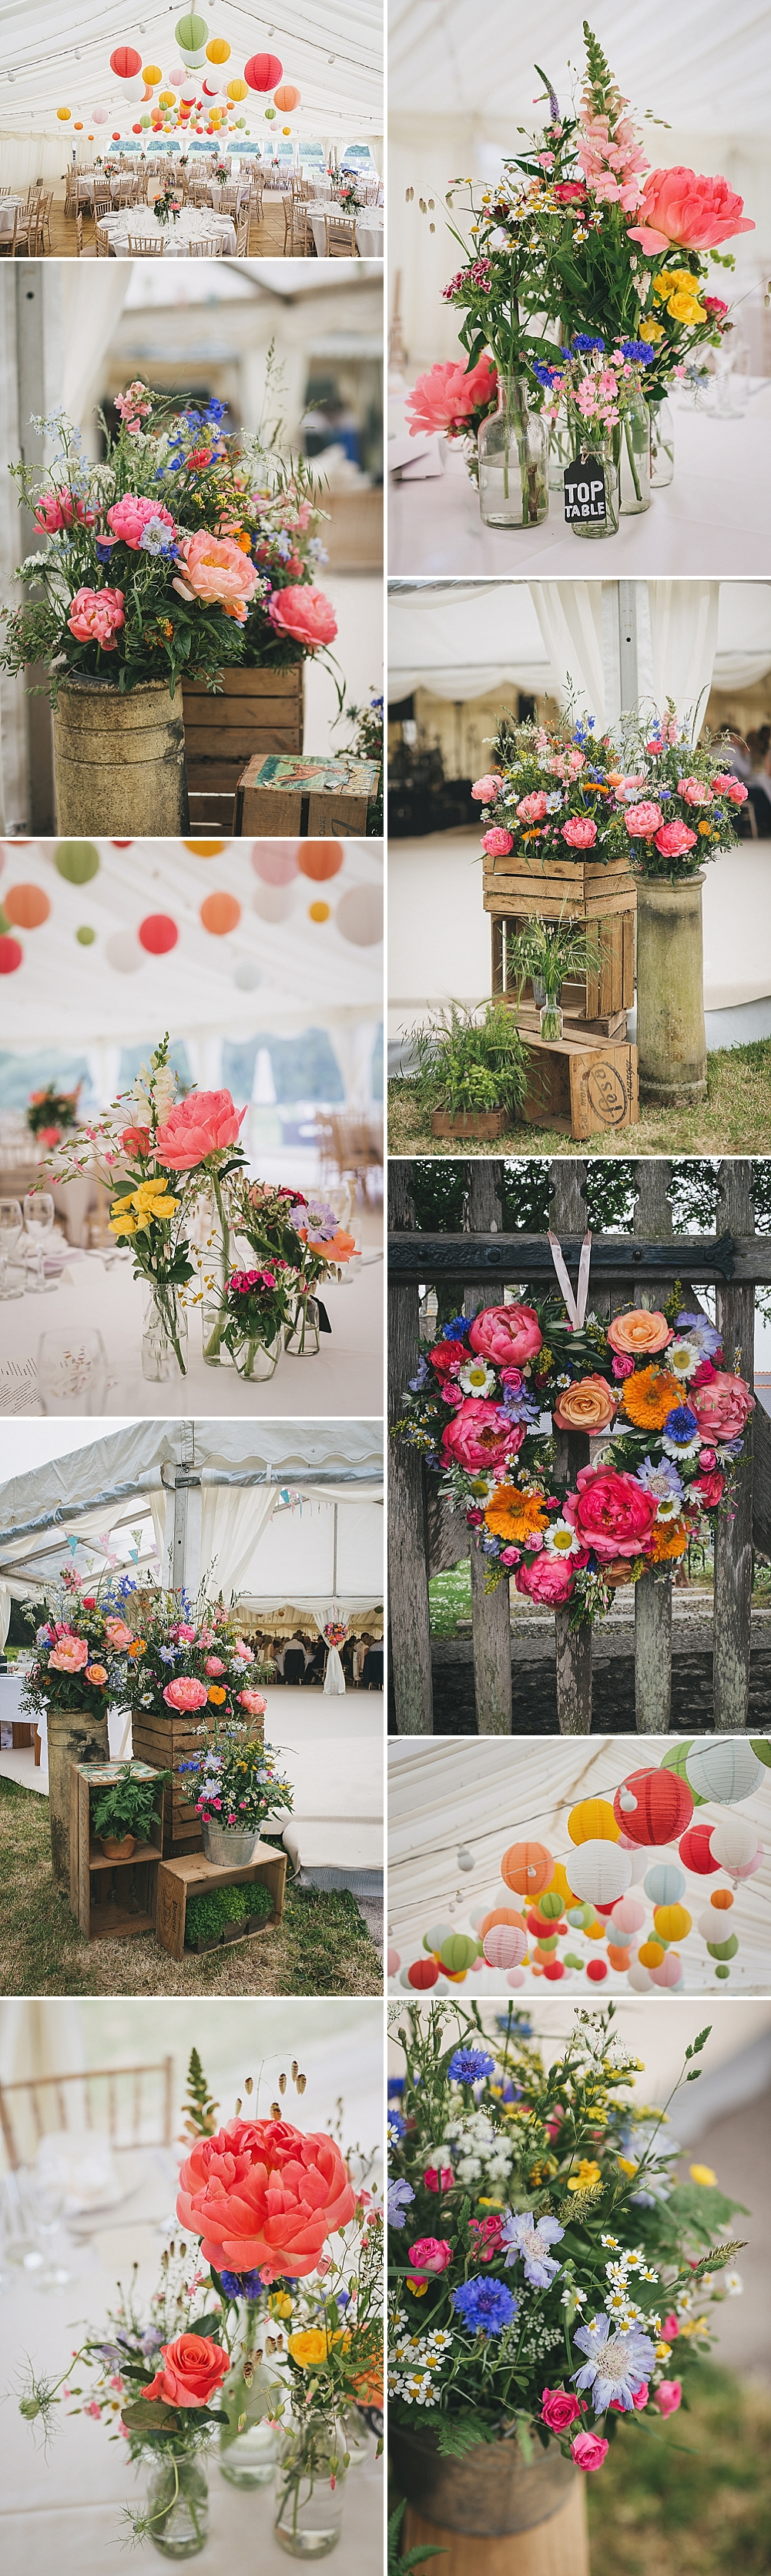 Rustic Marquee Wedding with Bright Lanterns & Wild Flowers by Helen Lisk Photography